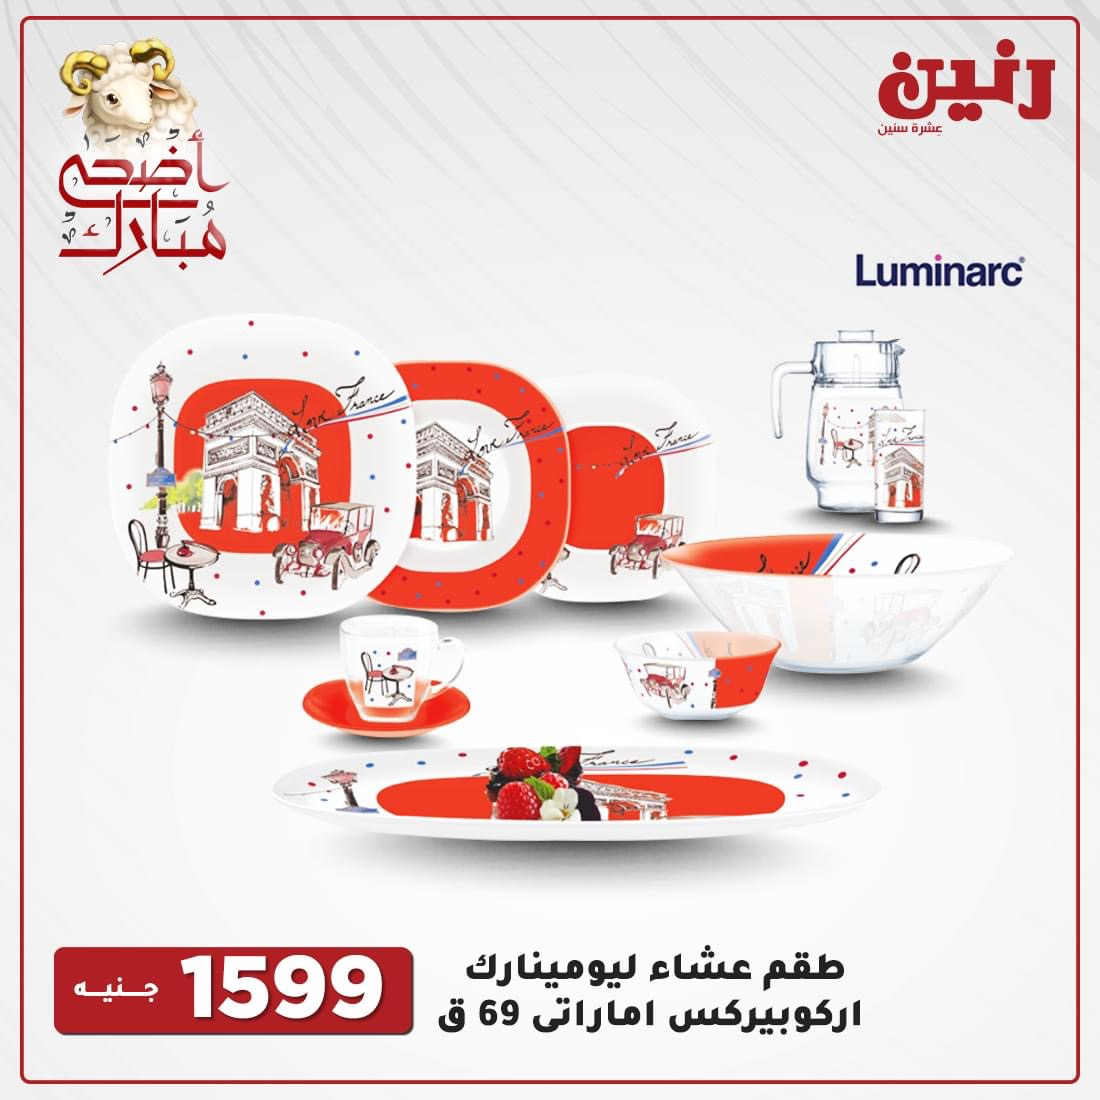 Today's ringing offers for appliances and household appliances from July 22 to 24, 2021 38